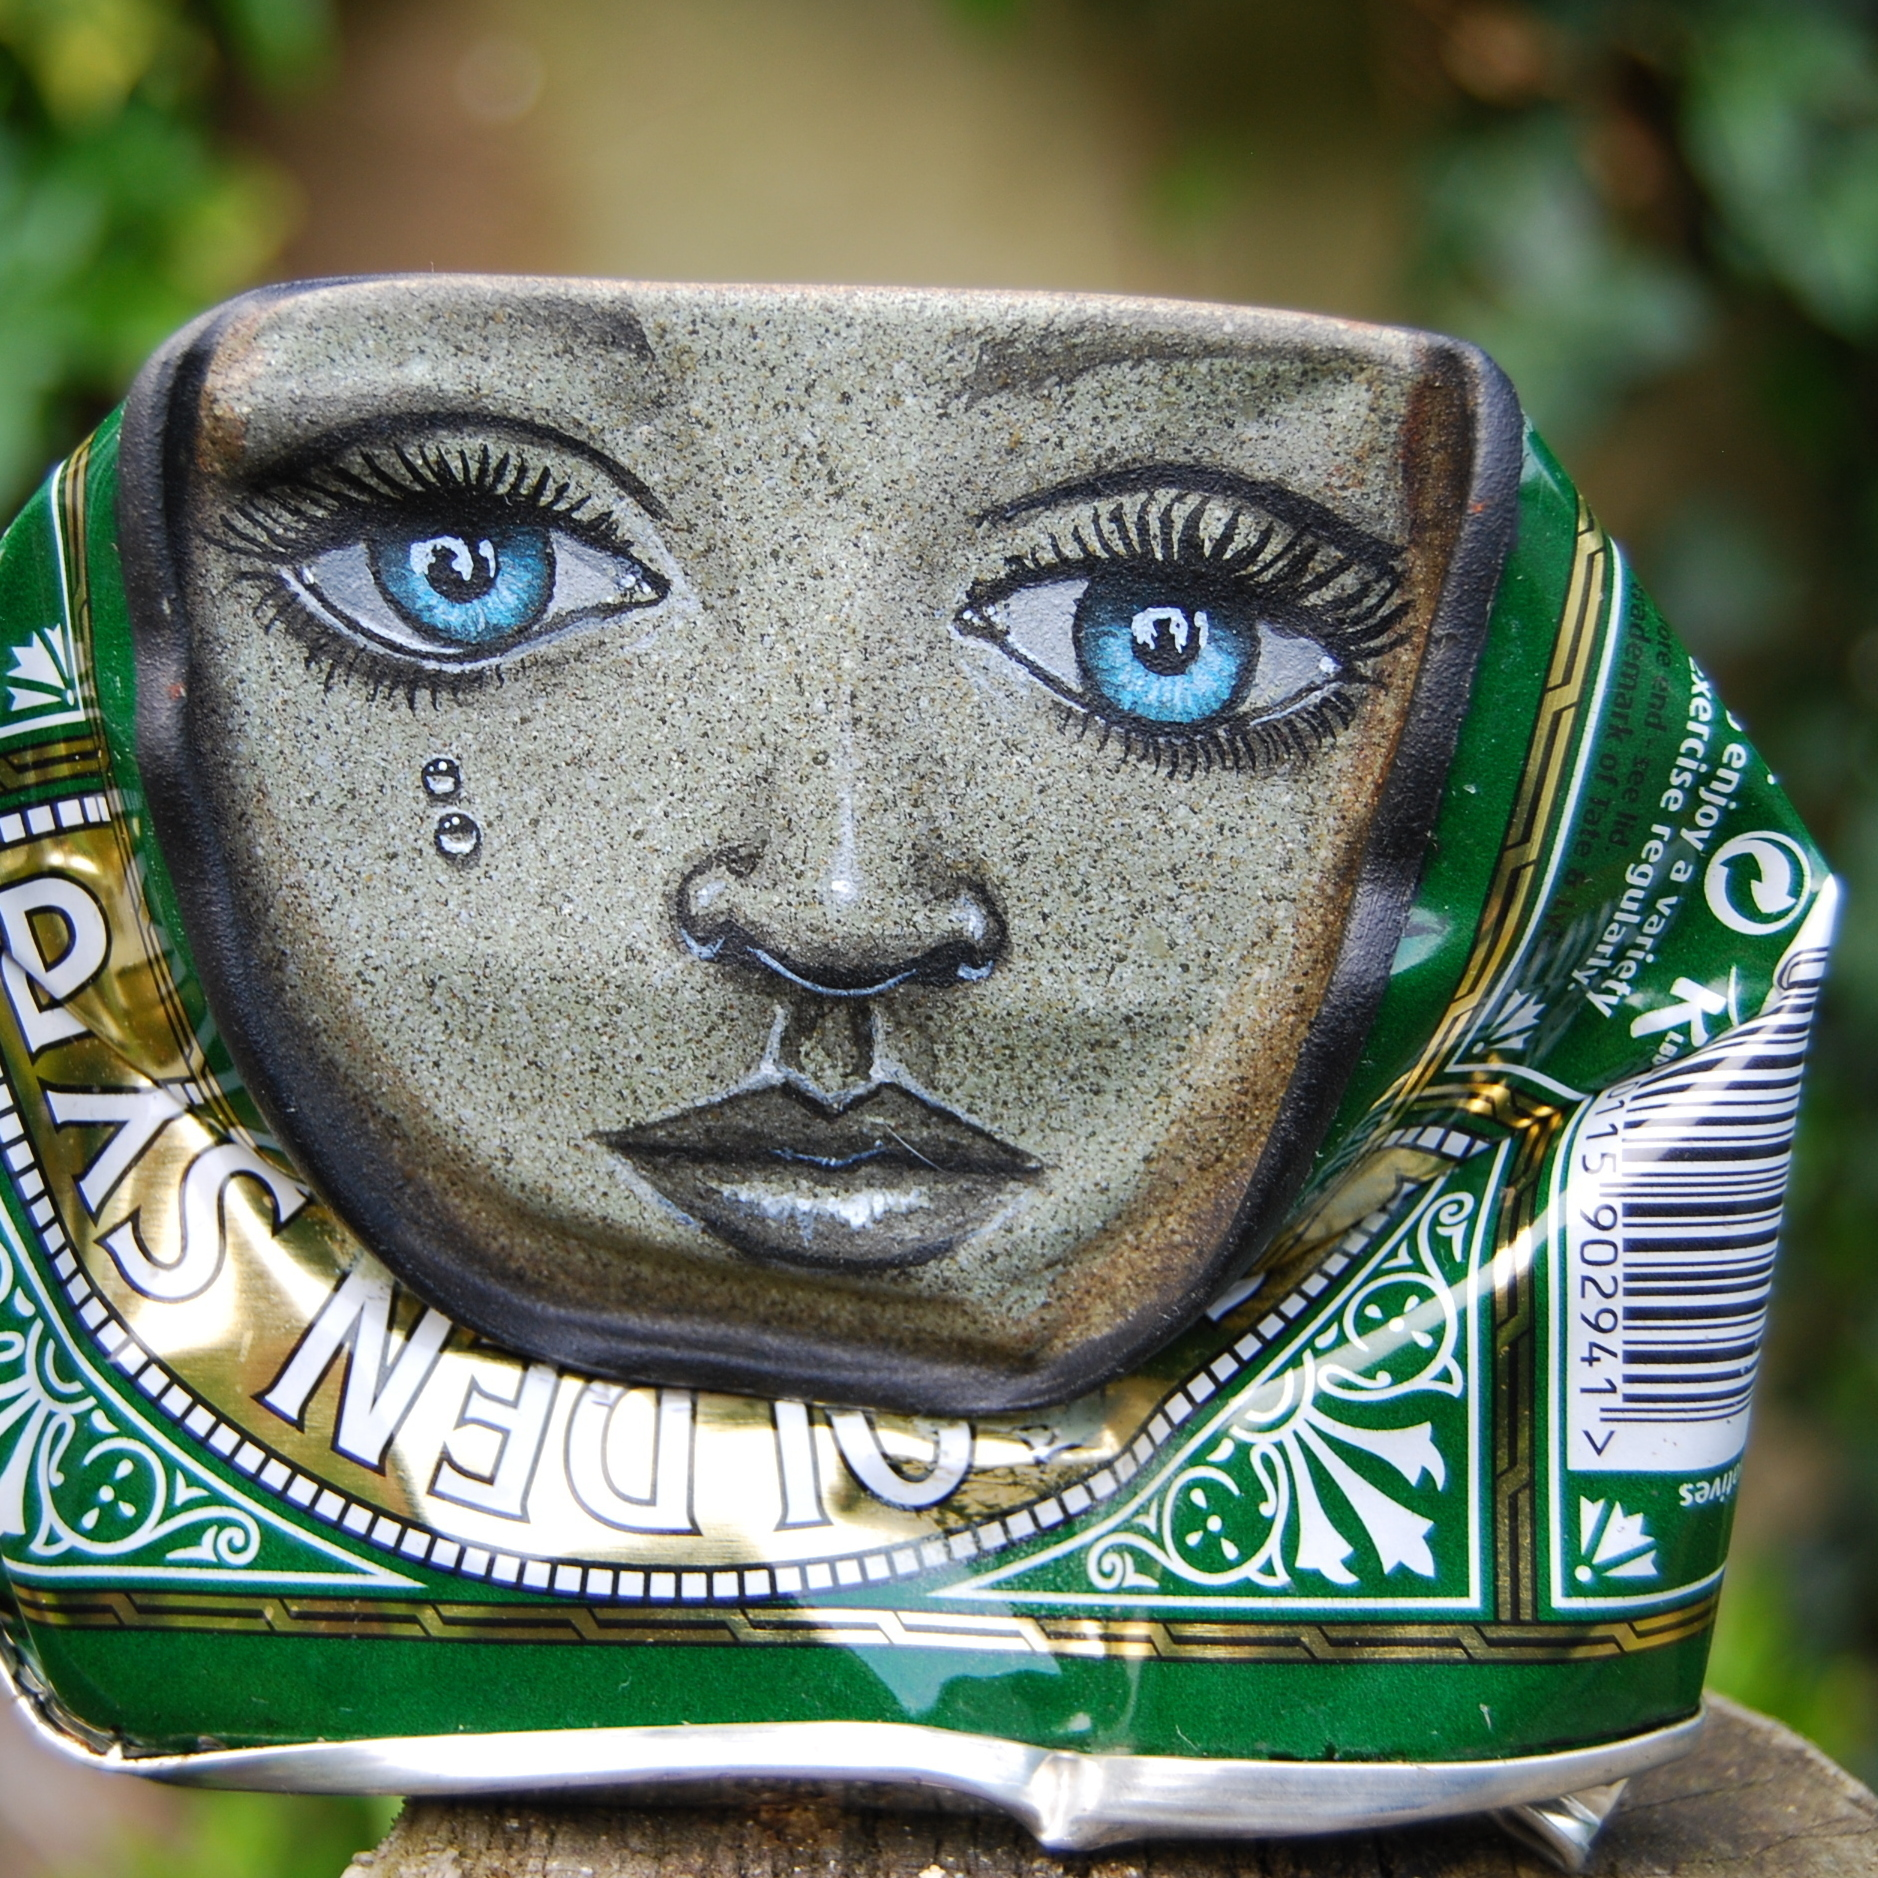 Face painted on a Lyle's Golden Syrup can.